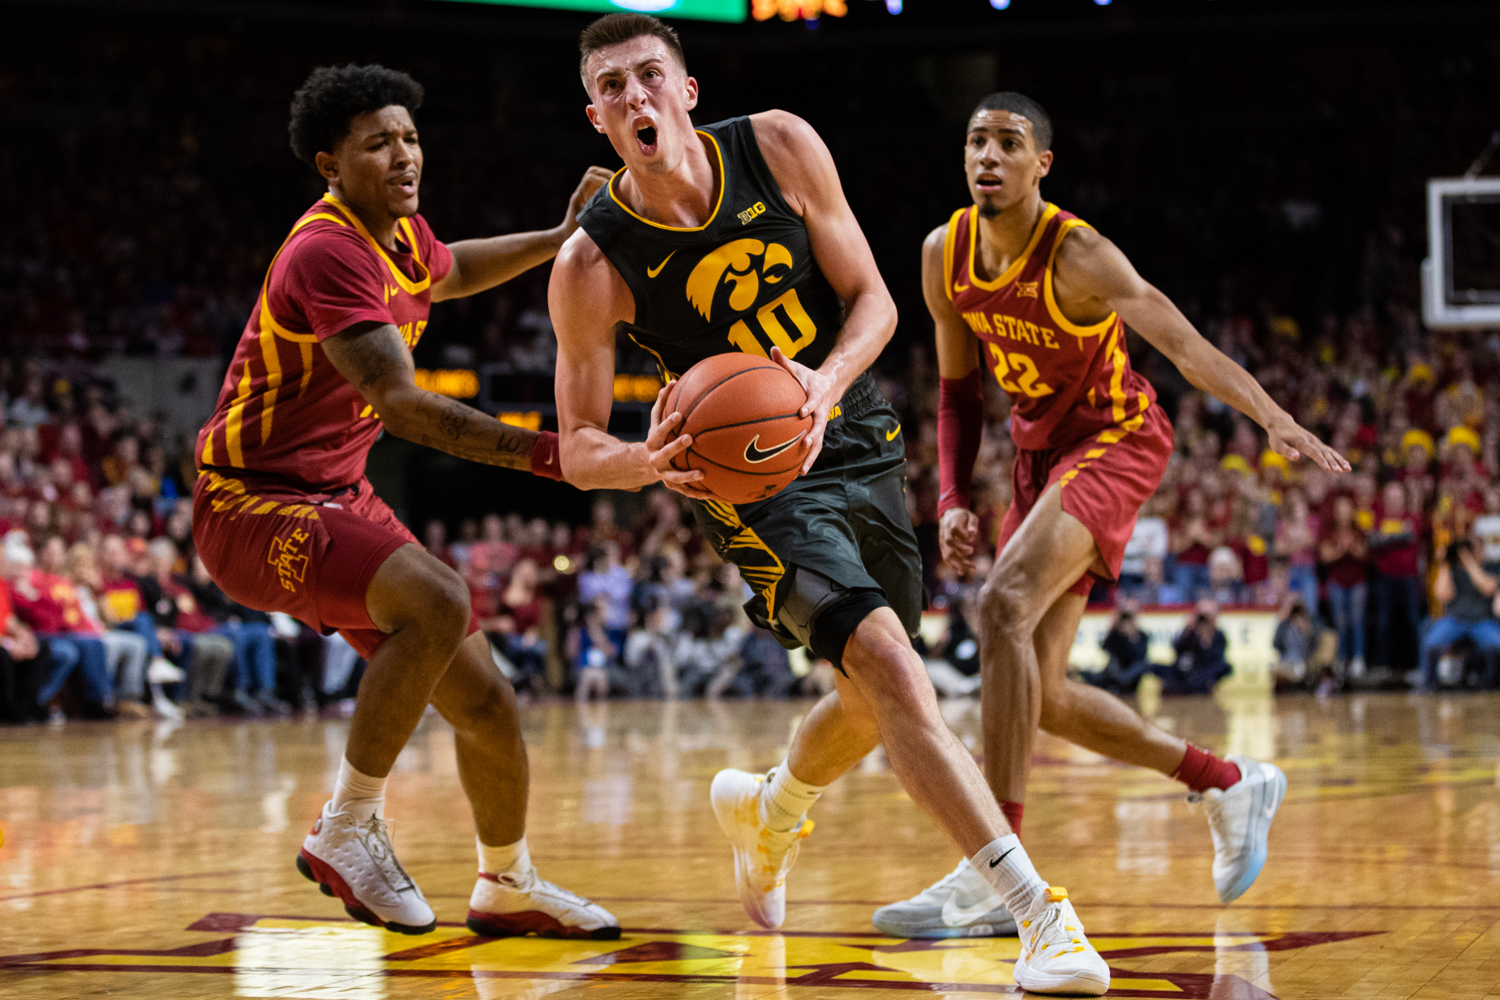 Iowa guard Joe Wieskamp drives to the rim during a menÕs basketball match between Iowa and Iowa State at Hilton Coliseum on Thursday, Dec. 12, 2019. Wieskamp finished with 13 points.